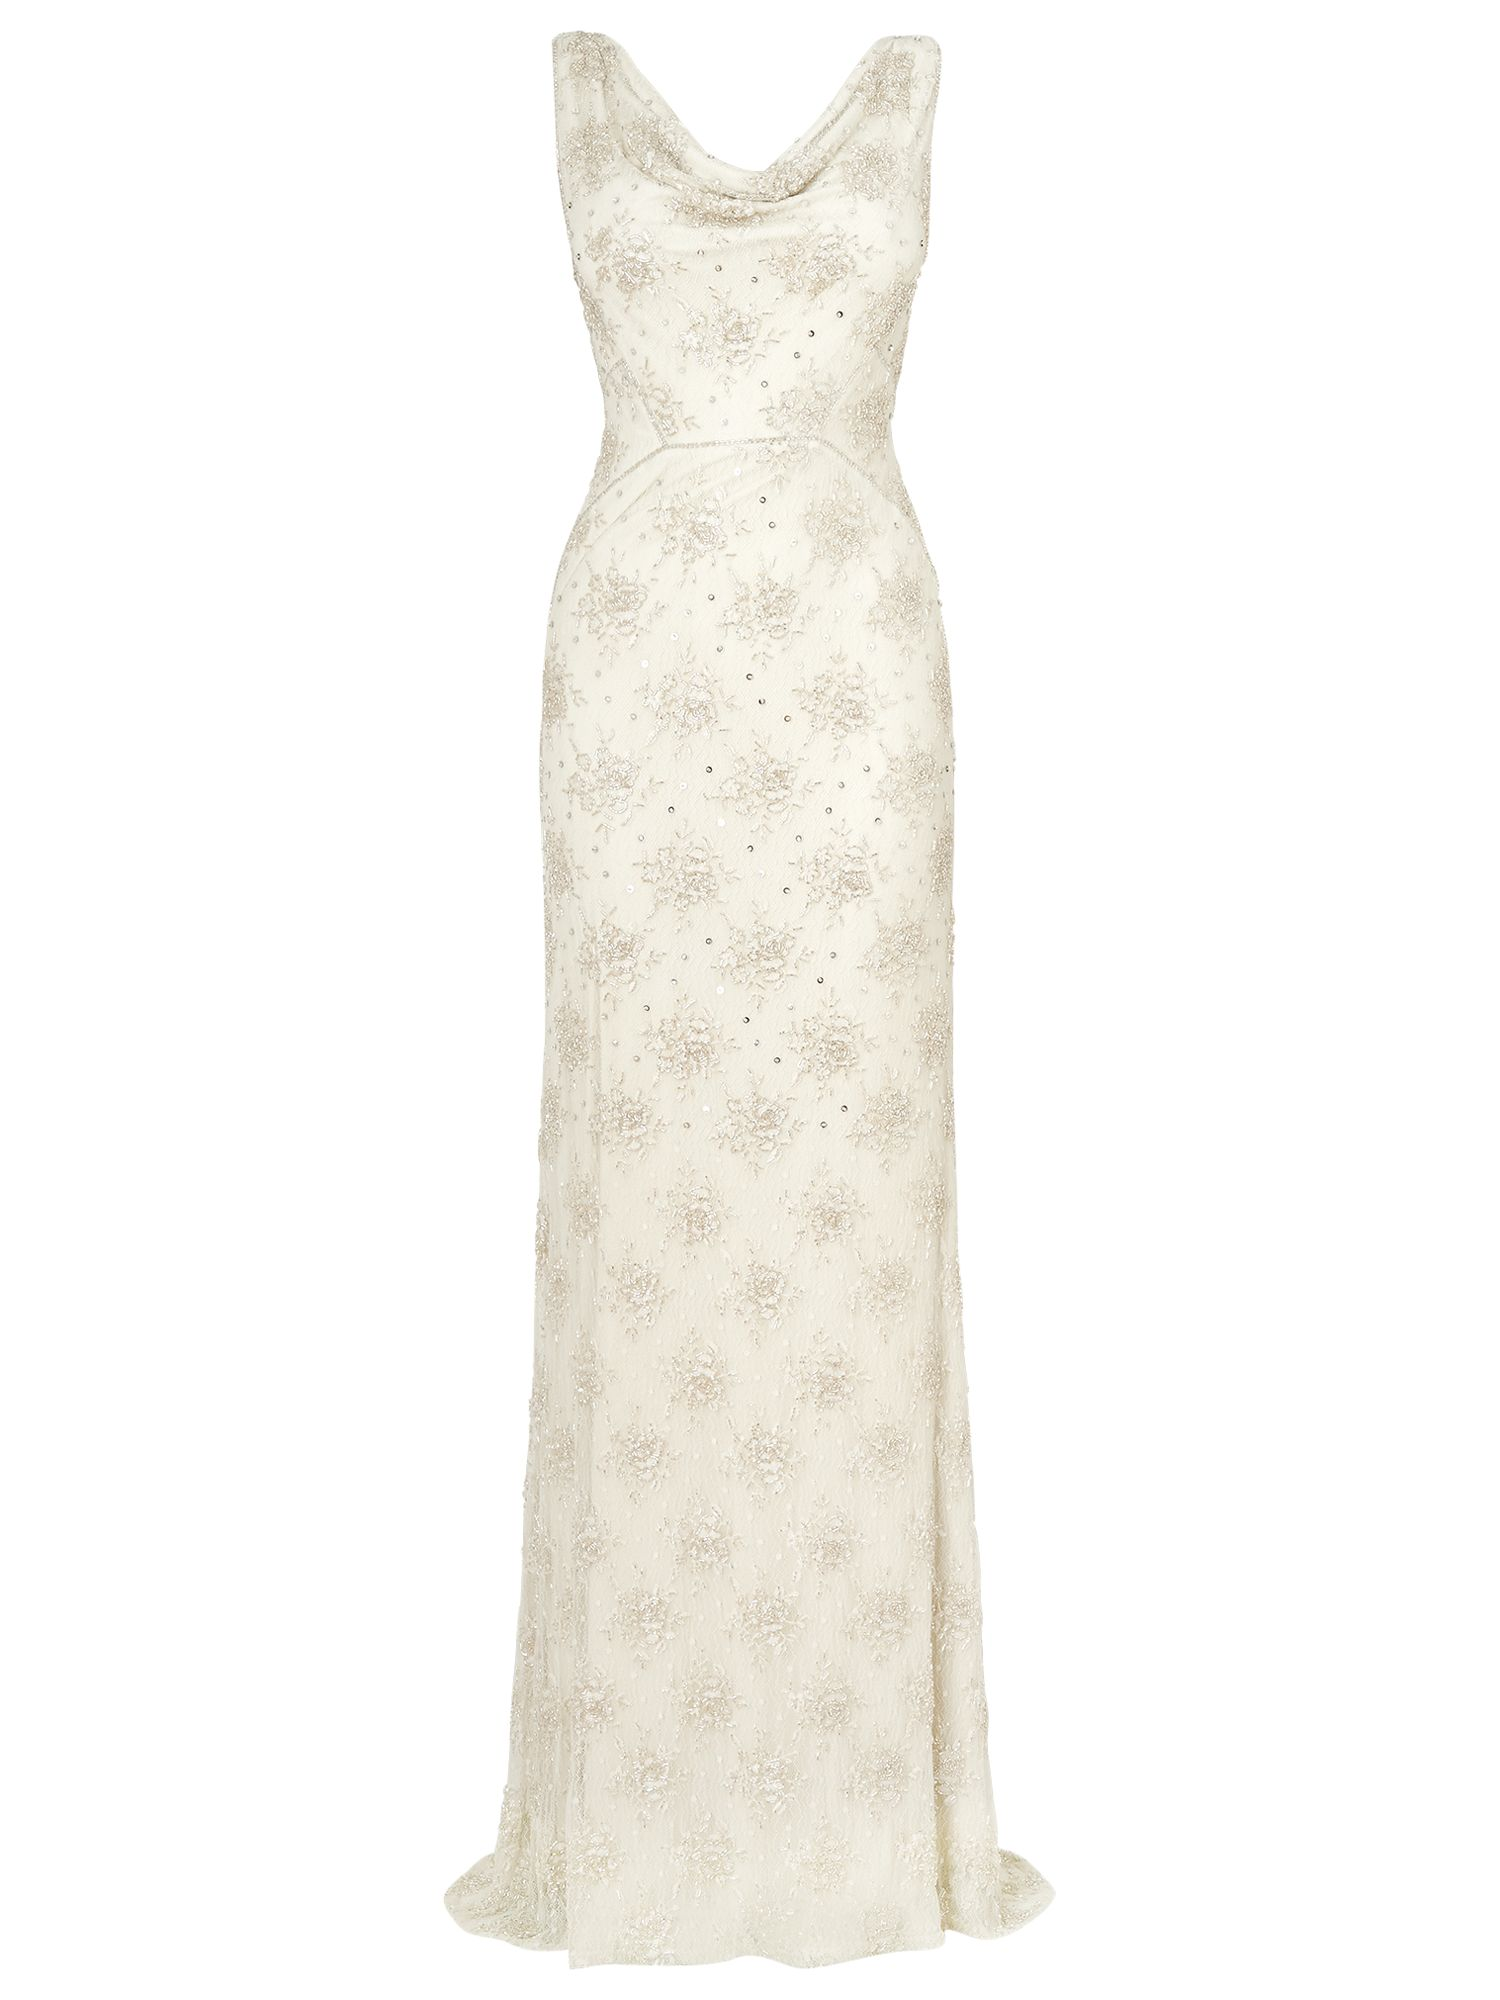 phase eight bridal aurora wedding dress antique, phase, eight, bridal, aurora, wedding, dress, antique, phase eight bridal, 18|6|10|12|8|16|14, gifts, wedding clothing, wedding dresses, women, womens dresses, special offers, womenswear offers, 20% off full price phase eight, fashion magazine, phase eight, brands l-z, inactive womenswear, 1833188